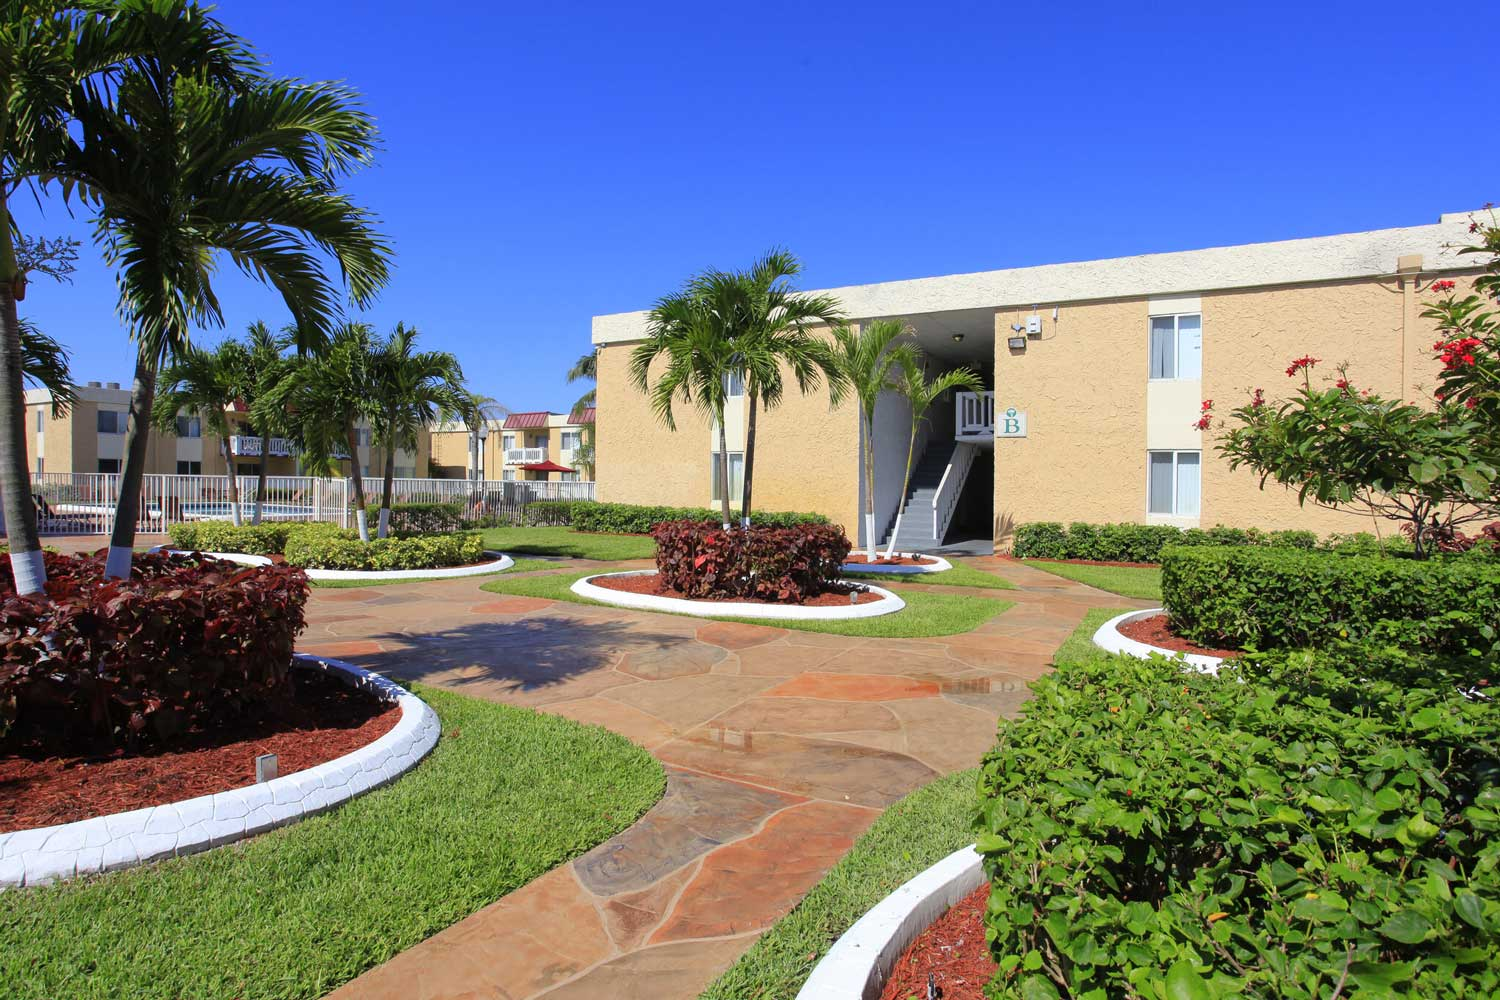 Manicured Landscaping at Windsor Forest Apartments in Pompano Beach, FL